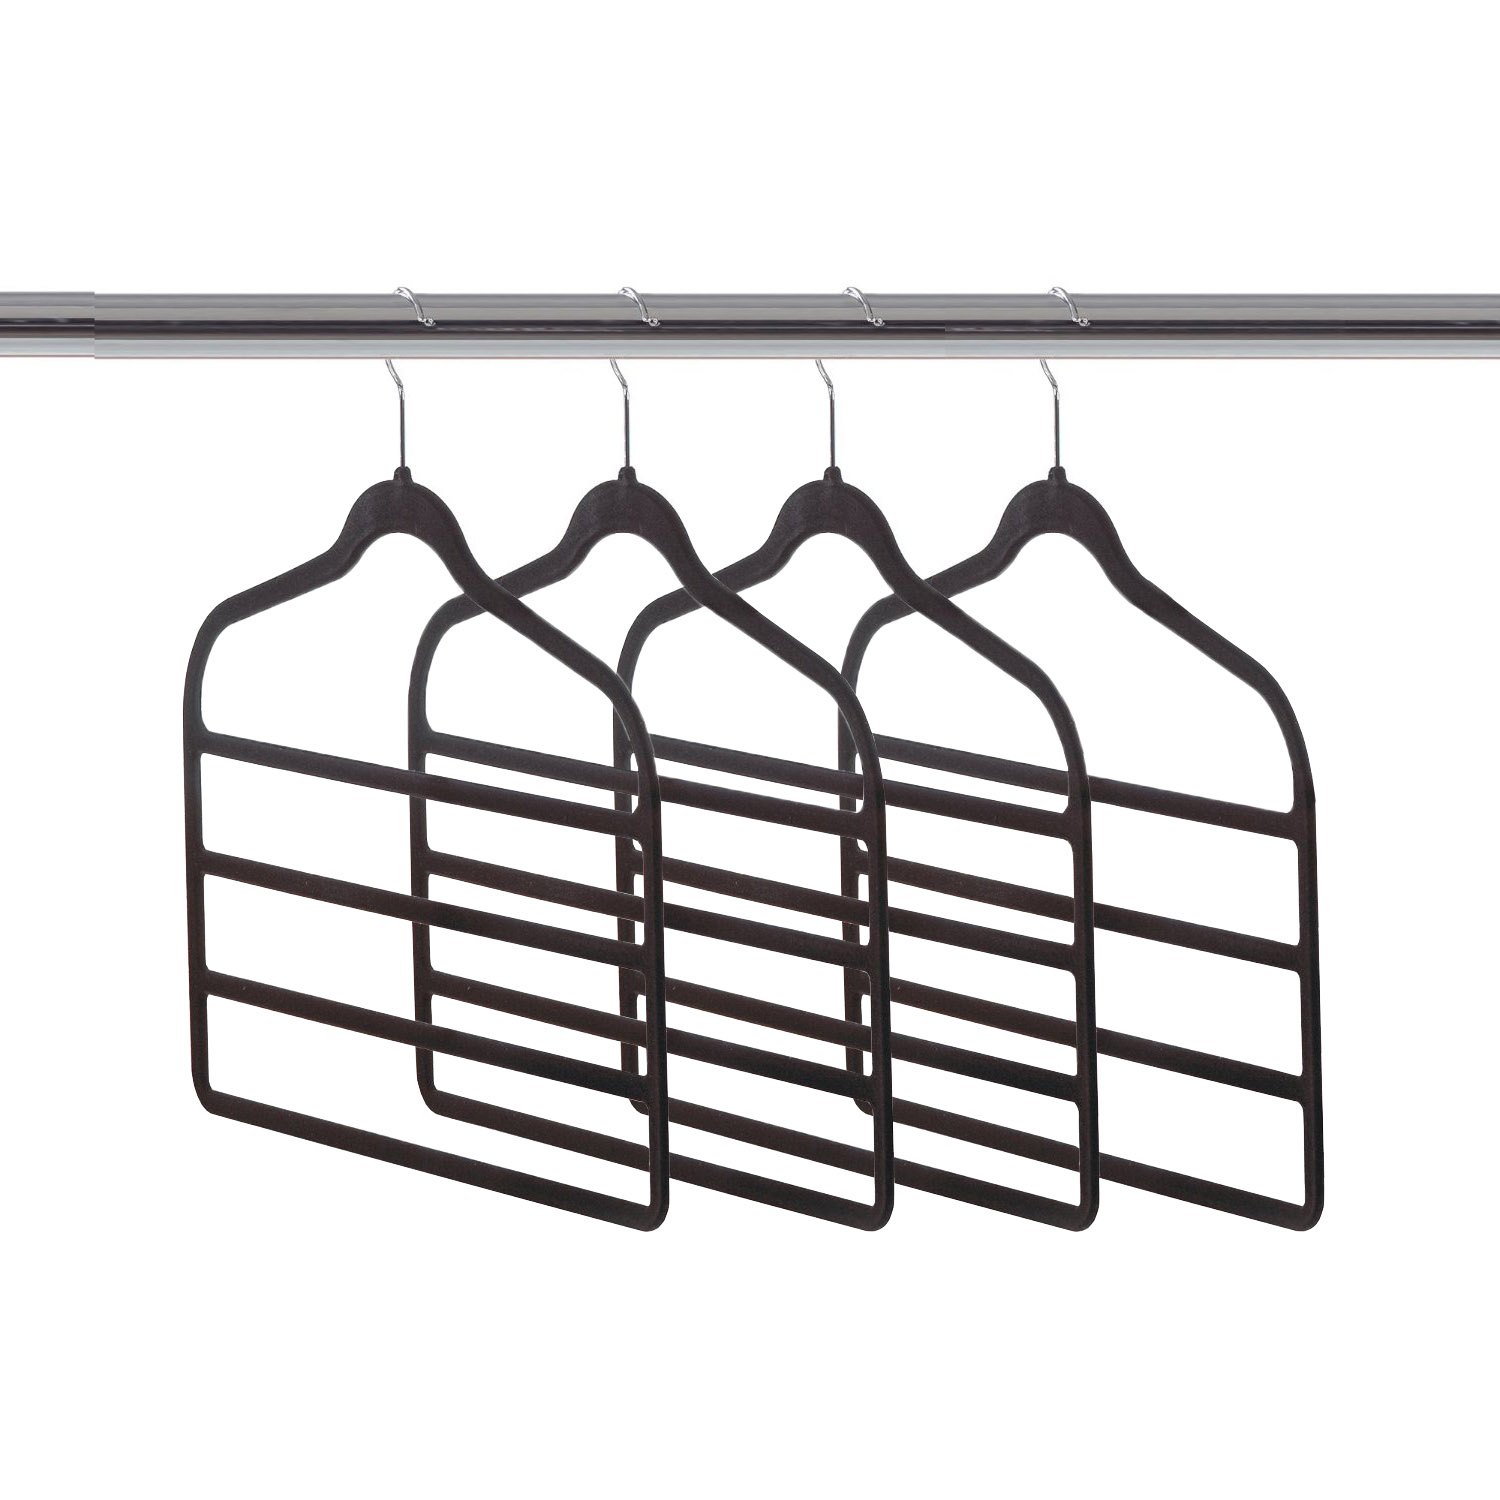 Home Ease 4-Tier Pants and Skirts Velvet Hanger, Black (4 Pack) | 2PKPH2000